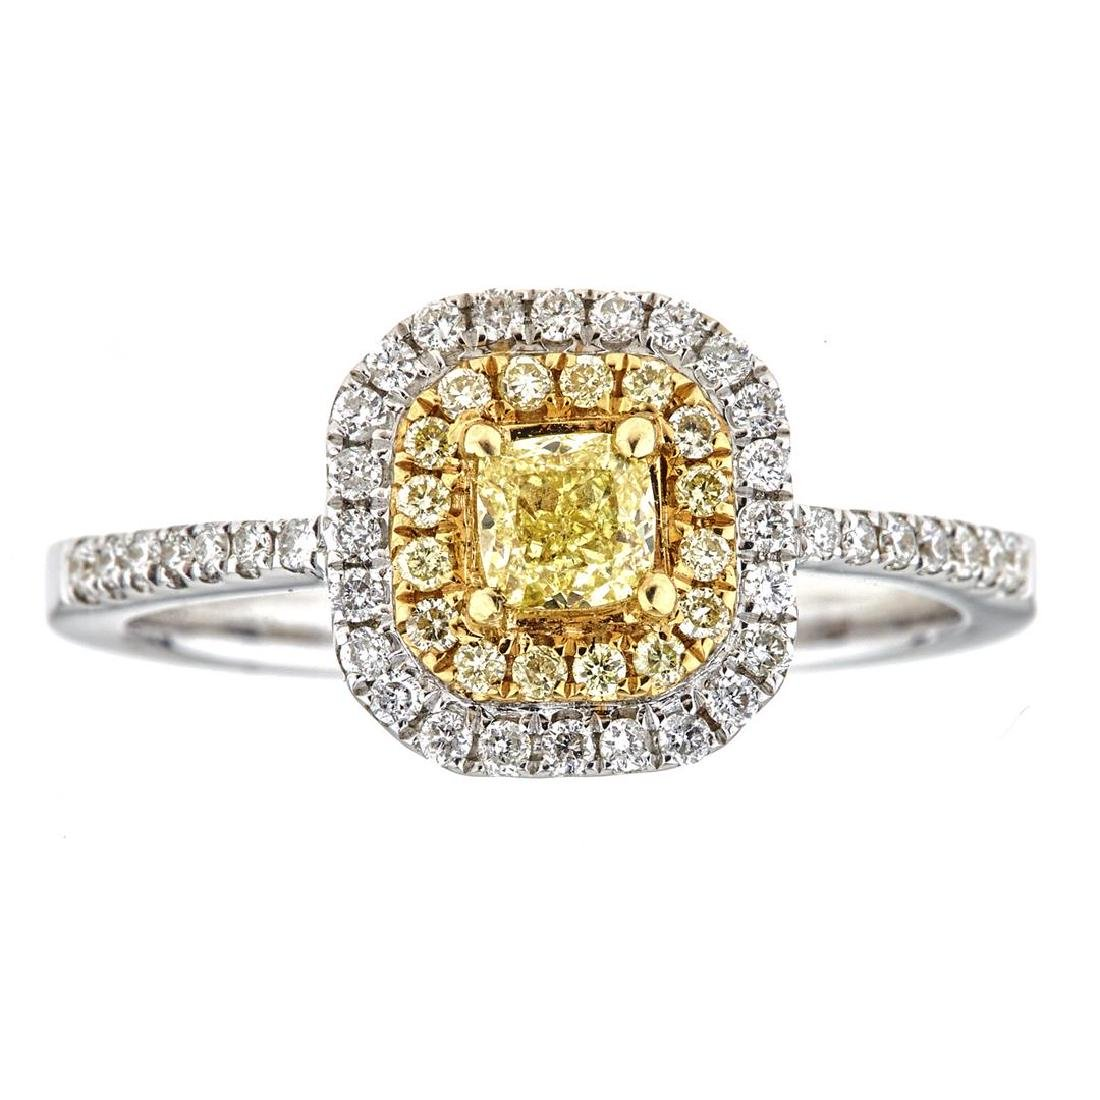 0.68 ctw Yellow and White Diamond Ring - 18KT White and